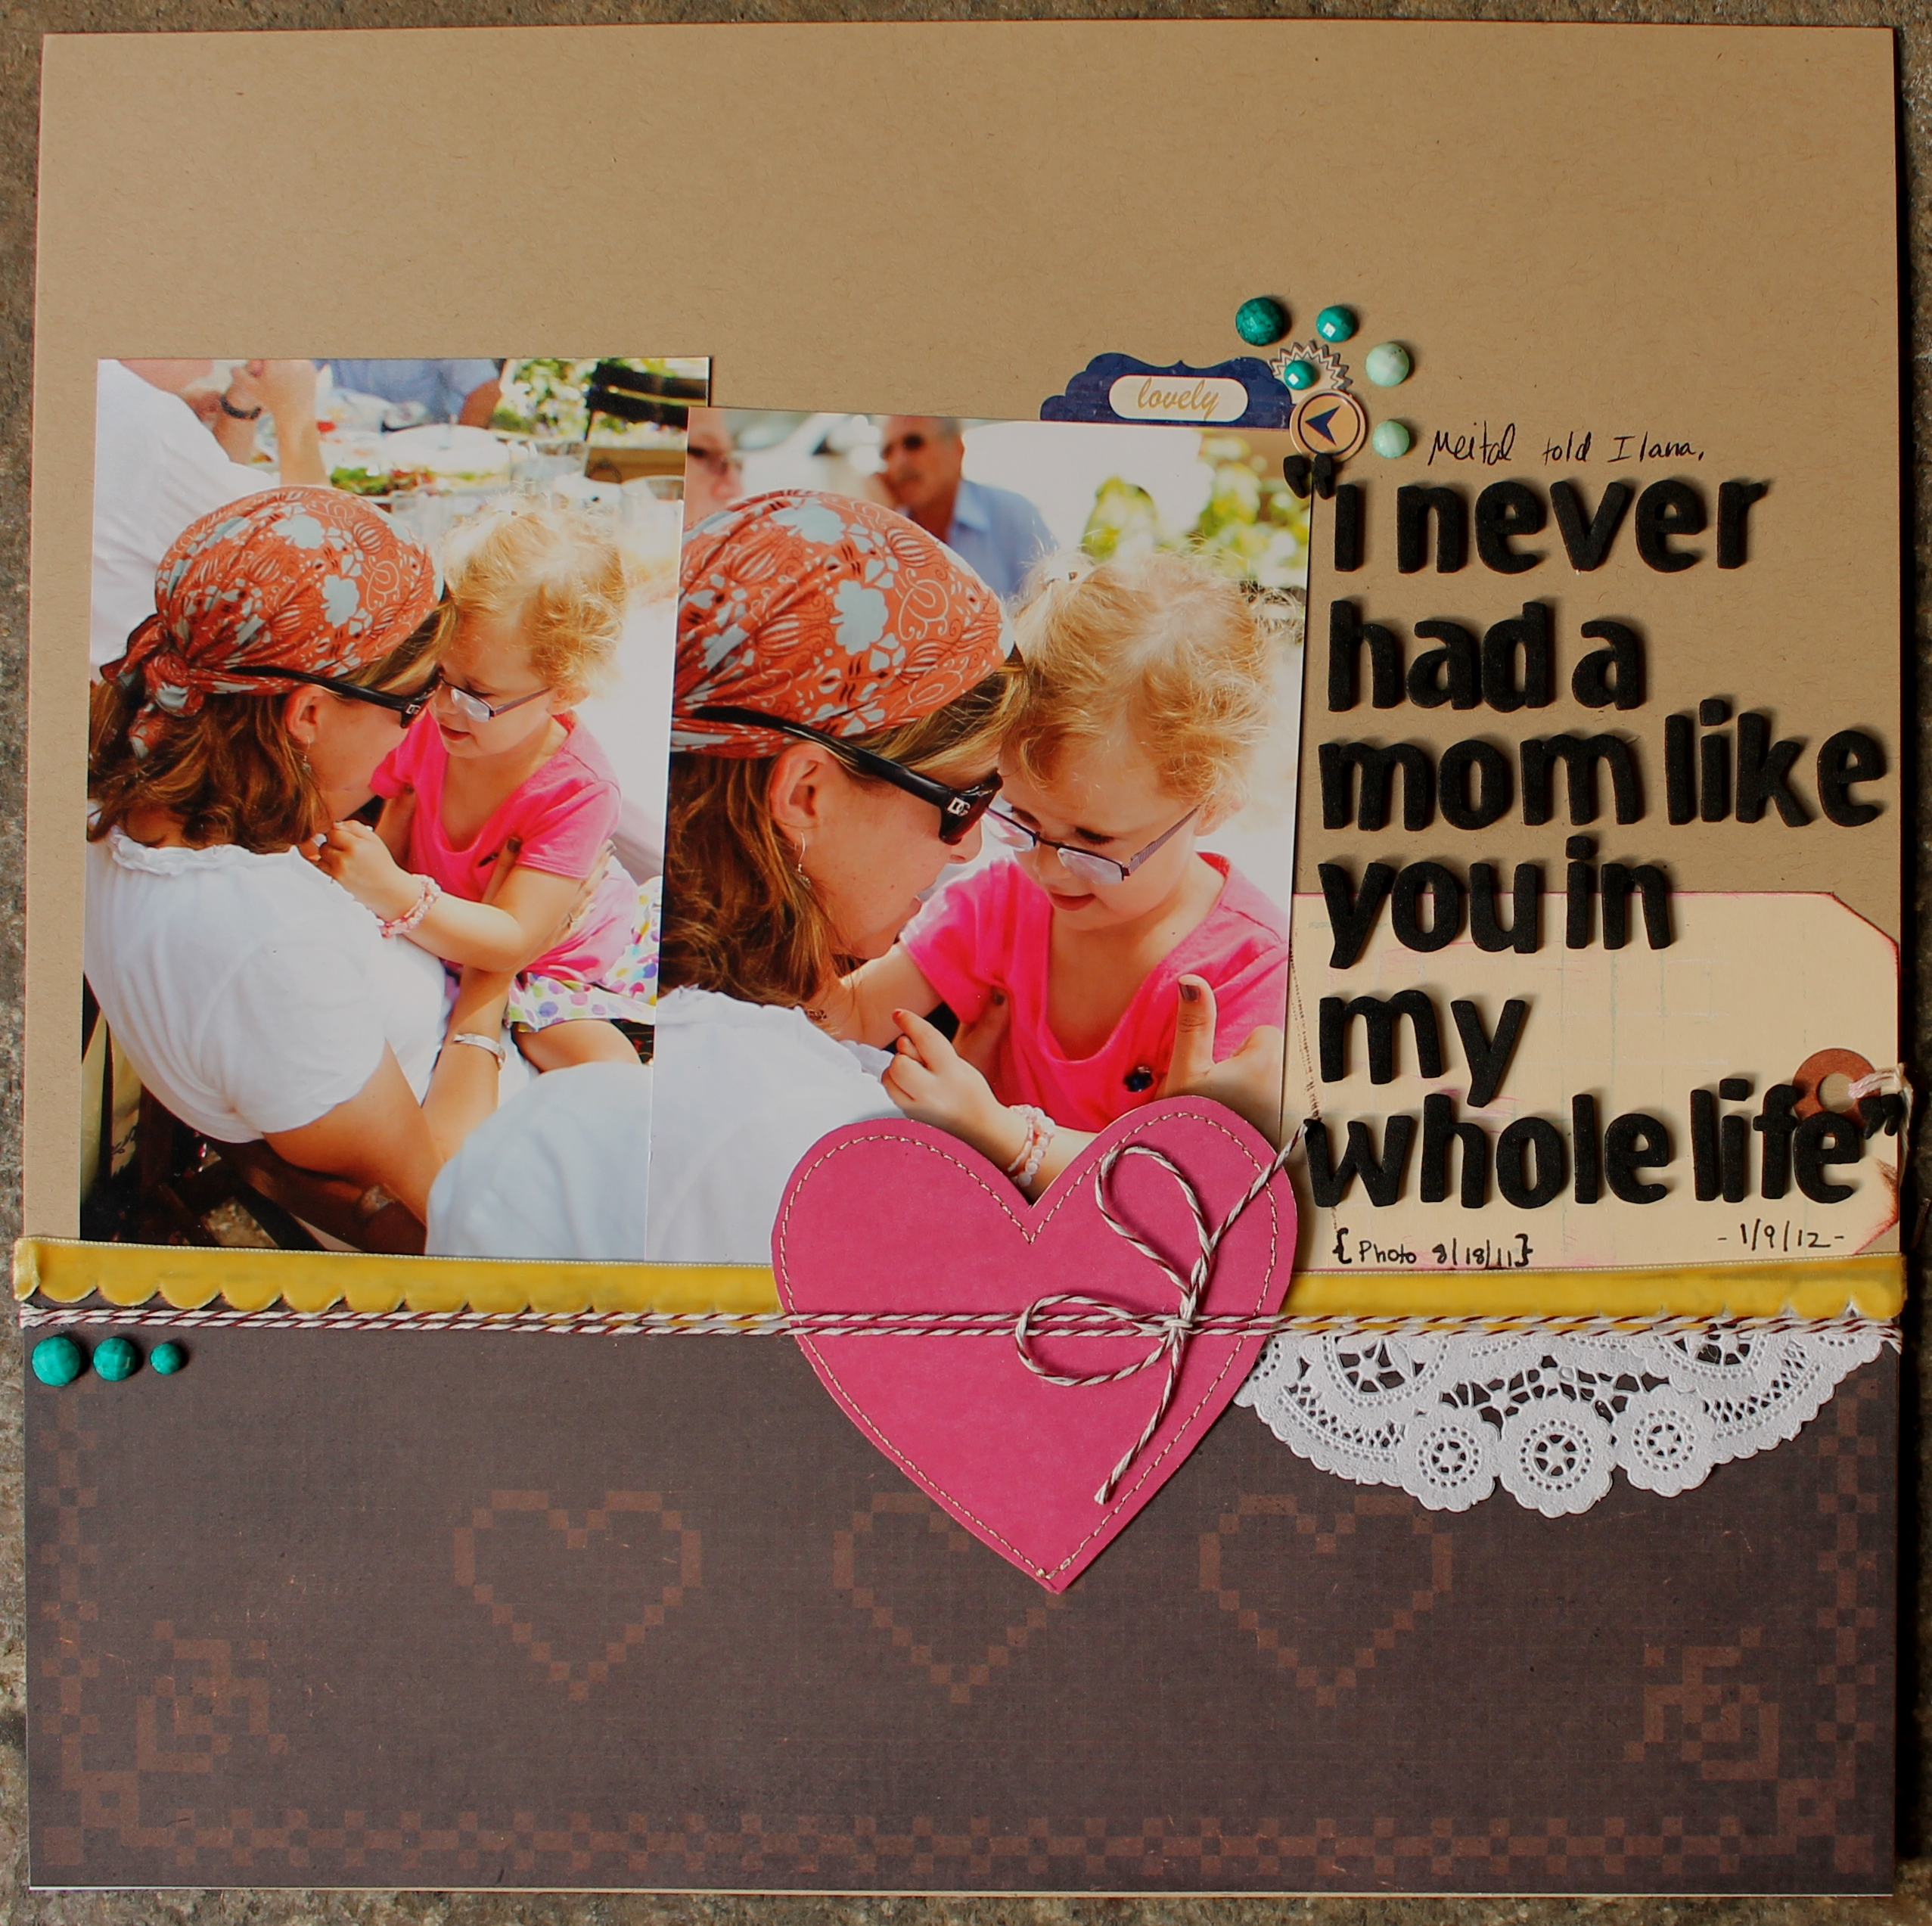 Scrapbook ideas relationships - It Is Also A Good Reminder That Great Layouts Don T Need A Whole Column Of Journaling To Touch Our Hearts